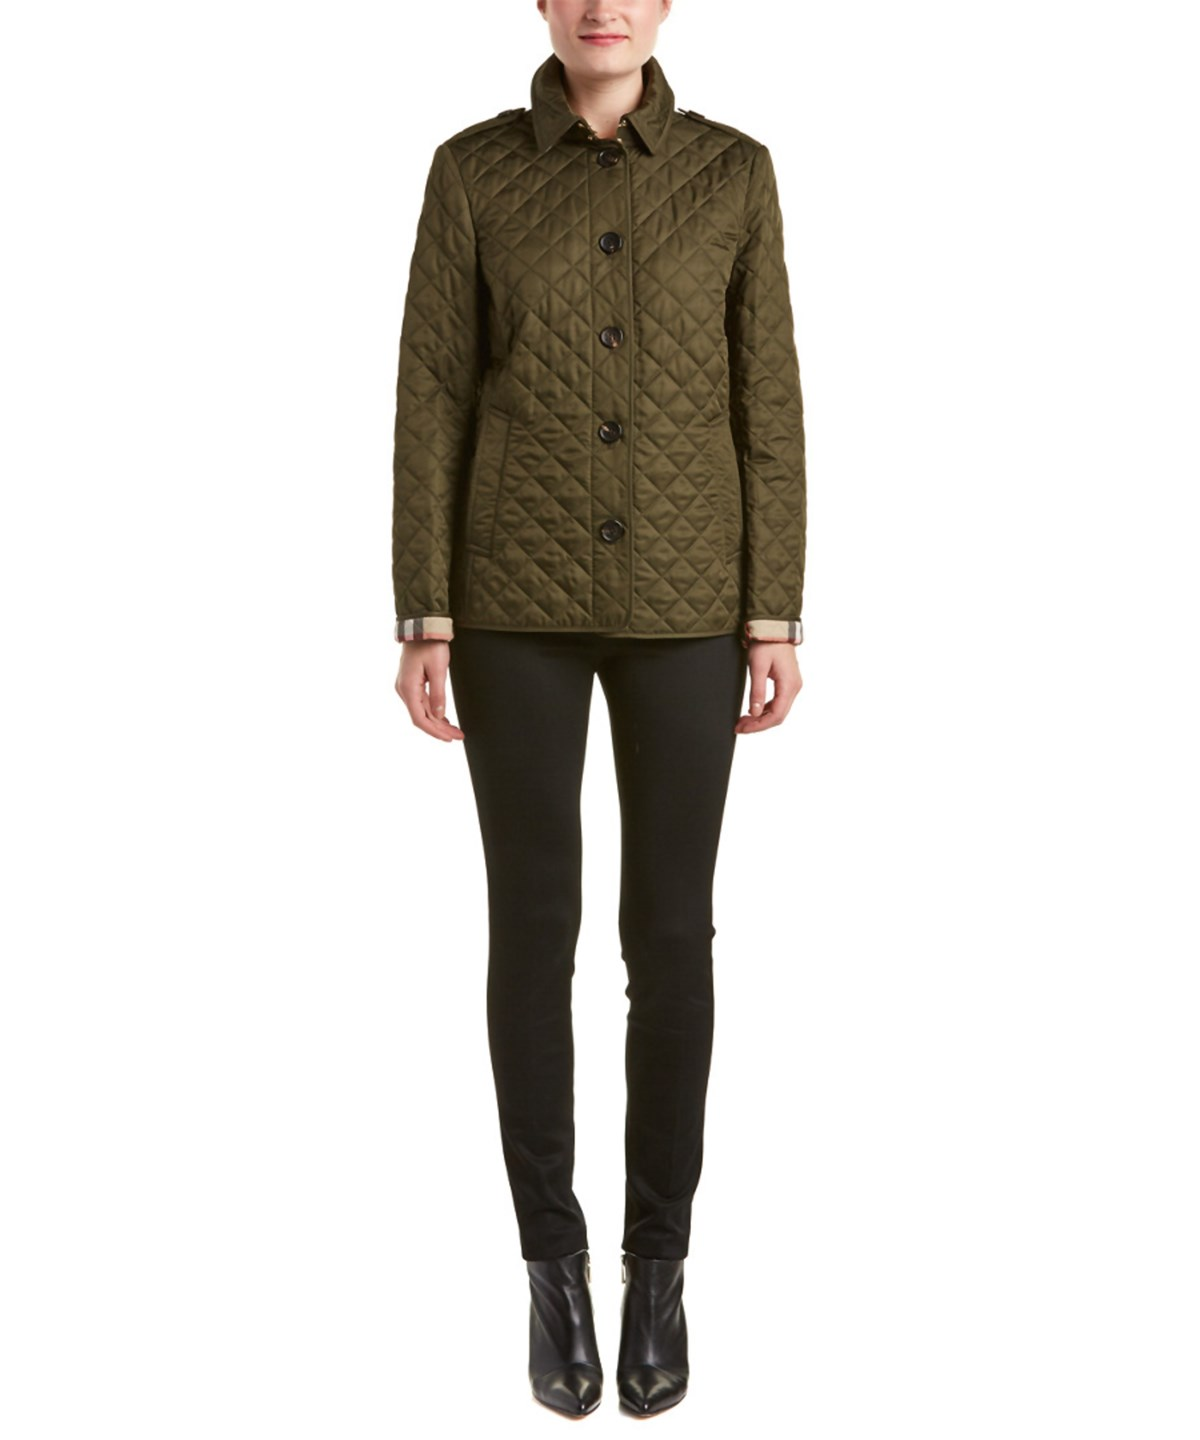 Burberry Cottons BURBERRY ASHURST DIAMOND QUILTED JACKET'